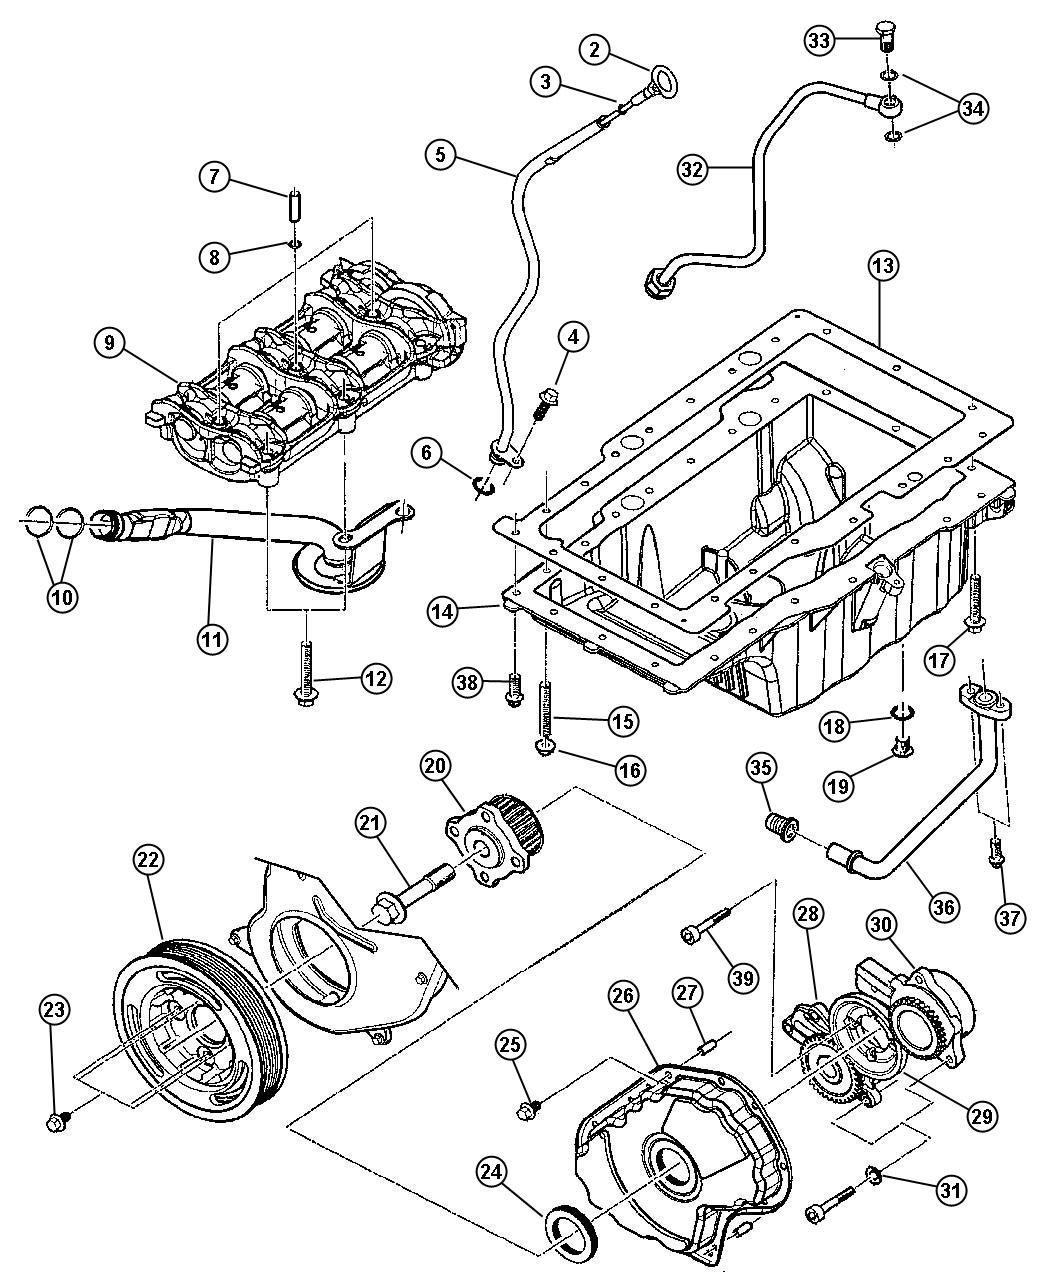 Diagram Engine Oiling 2.8 Diesel [Engine - 2.8L 4 Cyl Turbo Diesel]. for your Plymouth